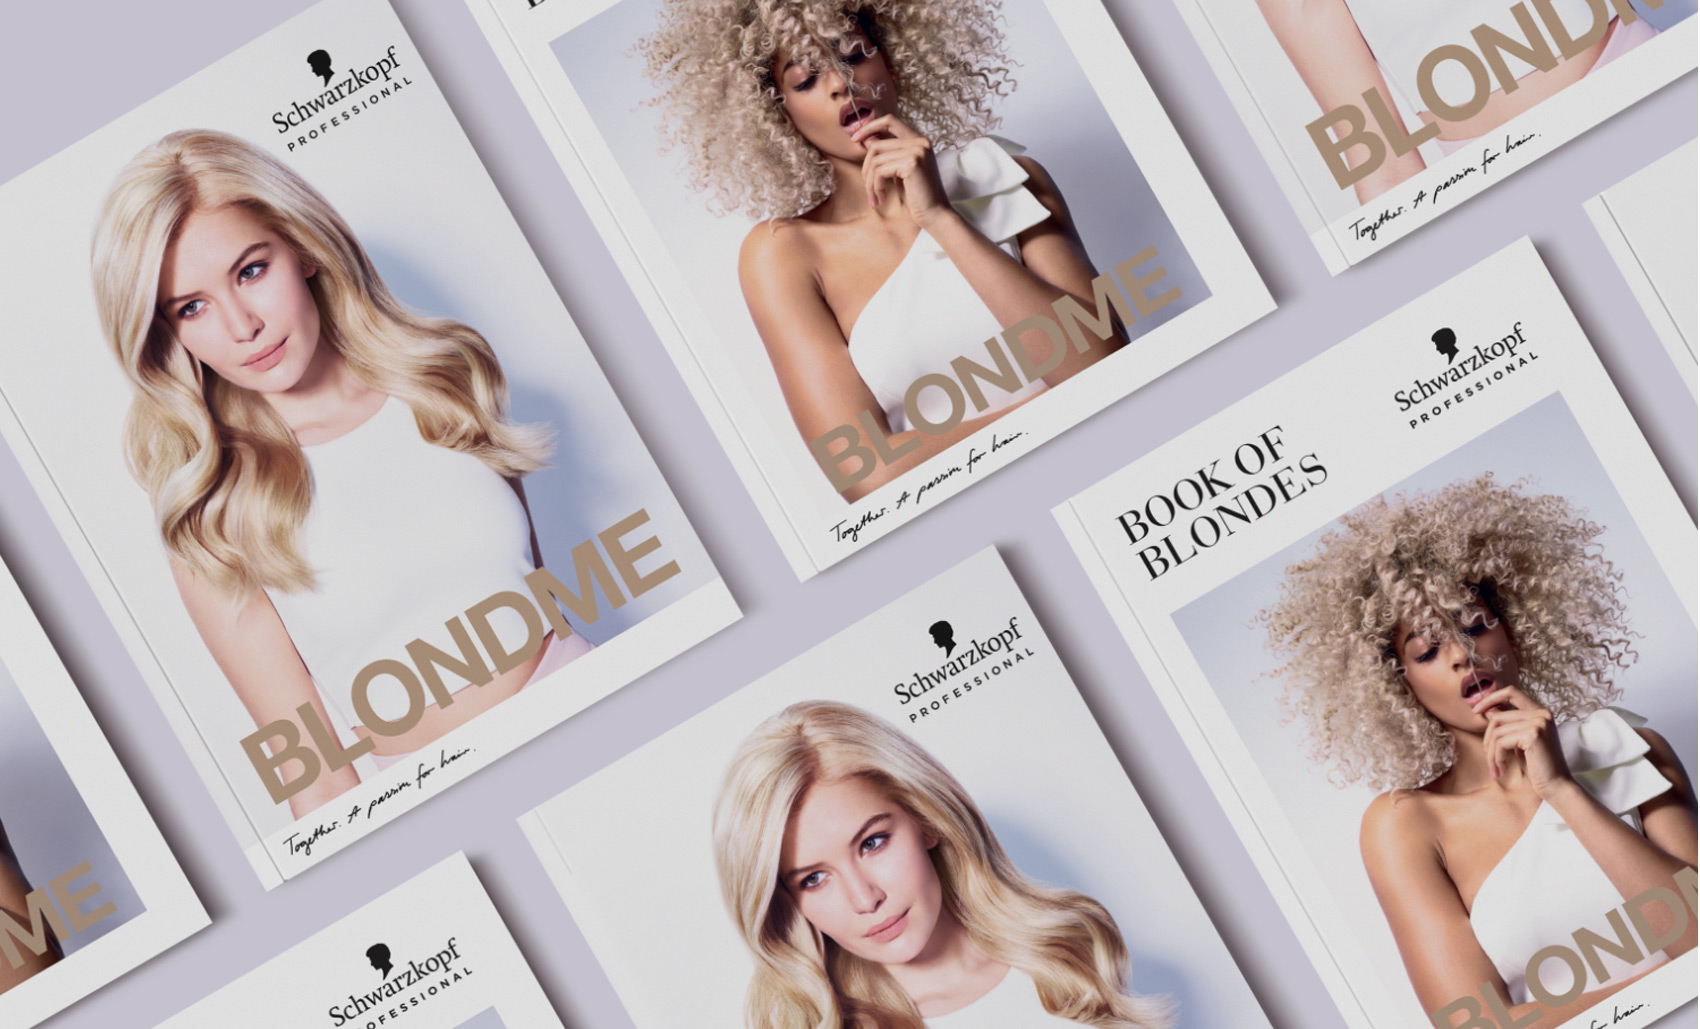 Isometric shot of brochures on table, featuring blonde women portraits